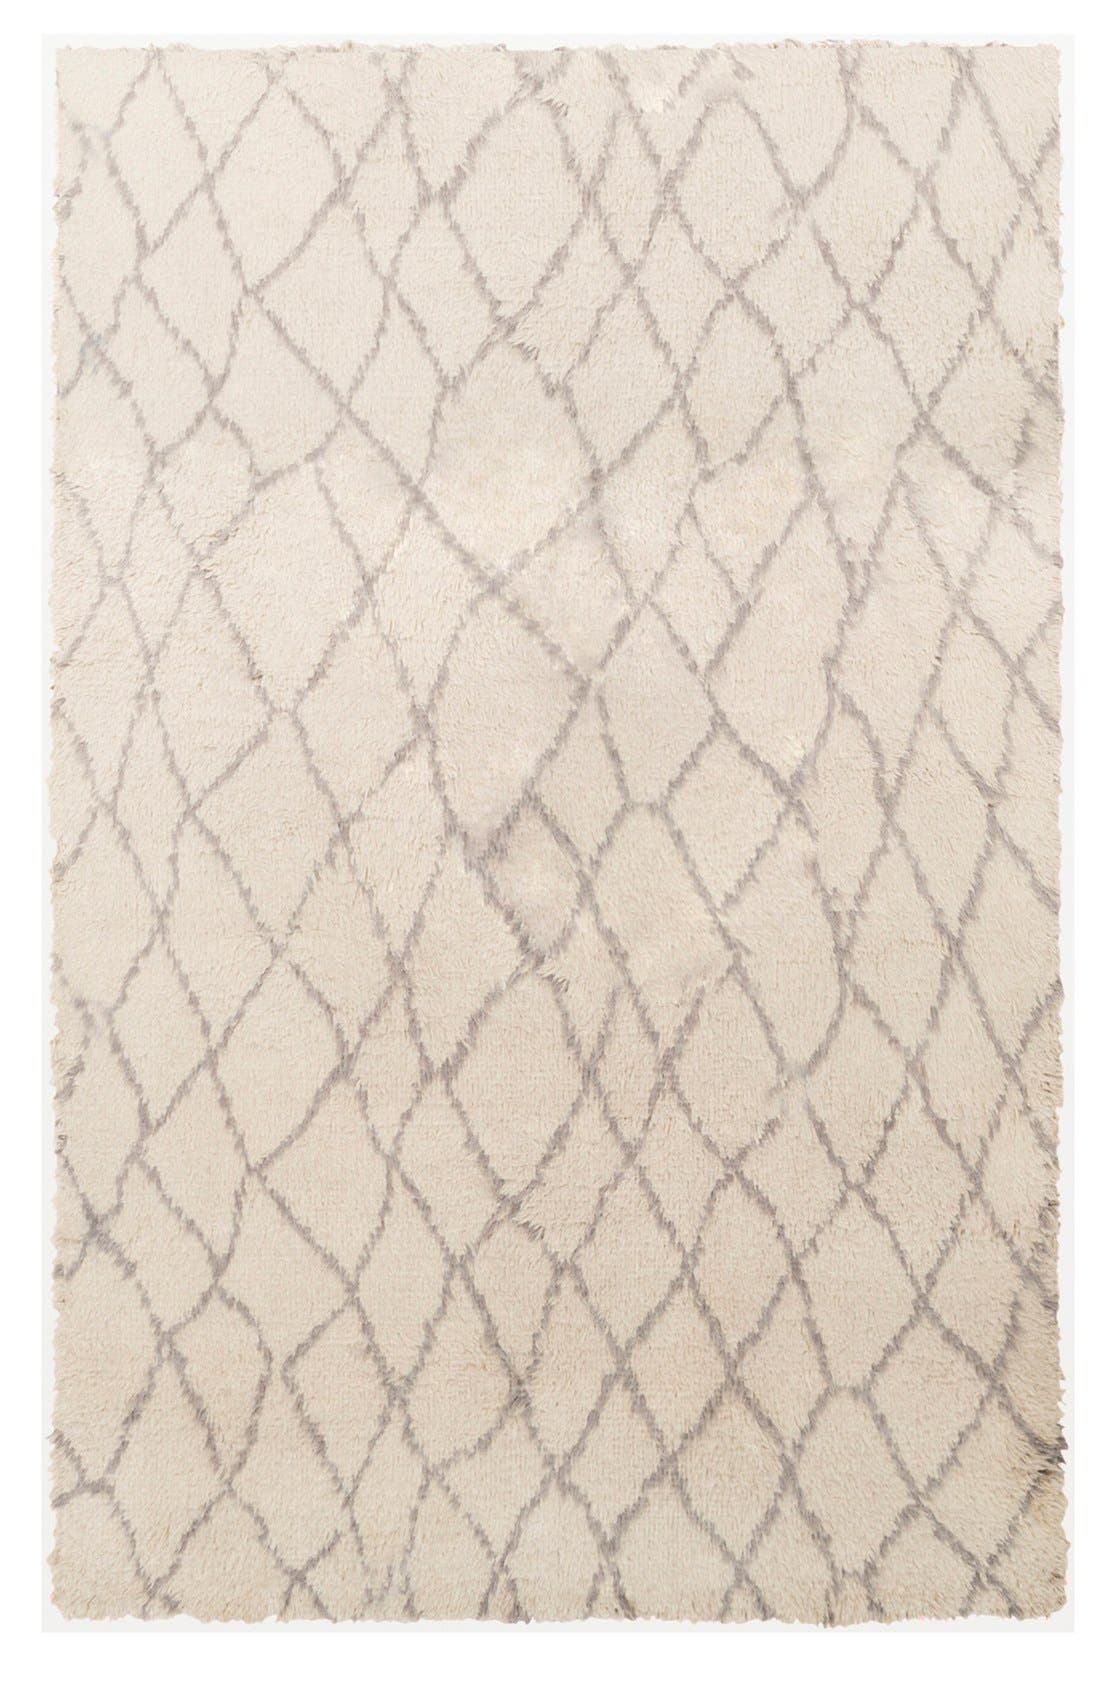 'Denali - Lines' Wool Rug,                             Main thumbnail 1, color,                             Beige/ Grey